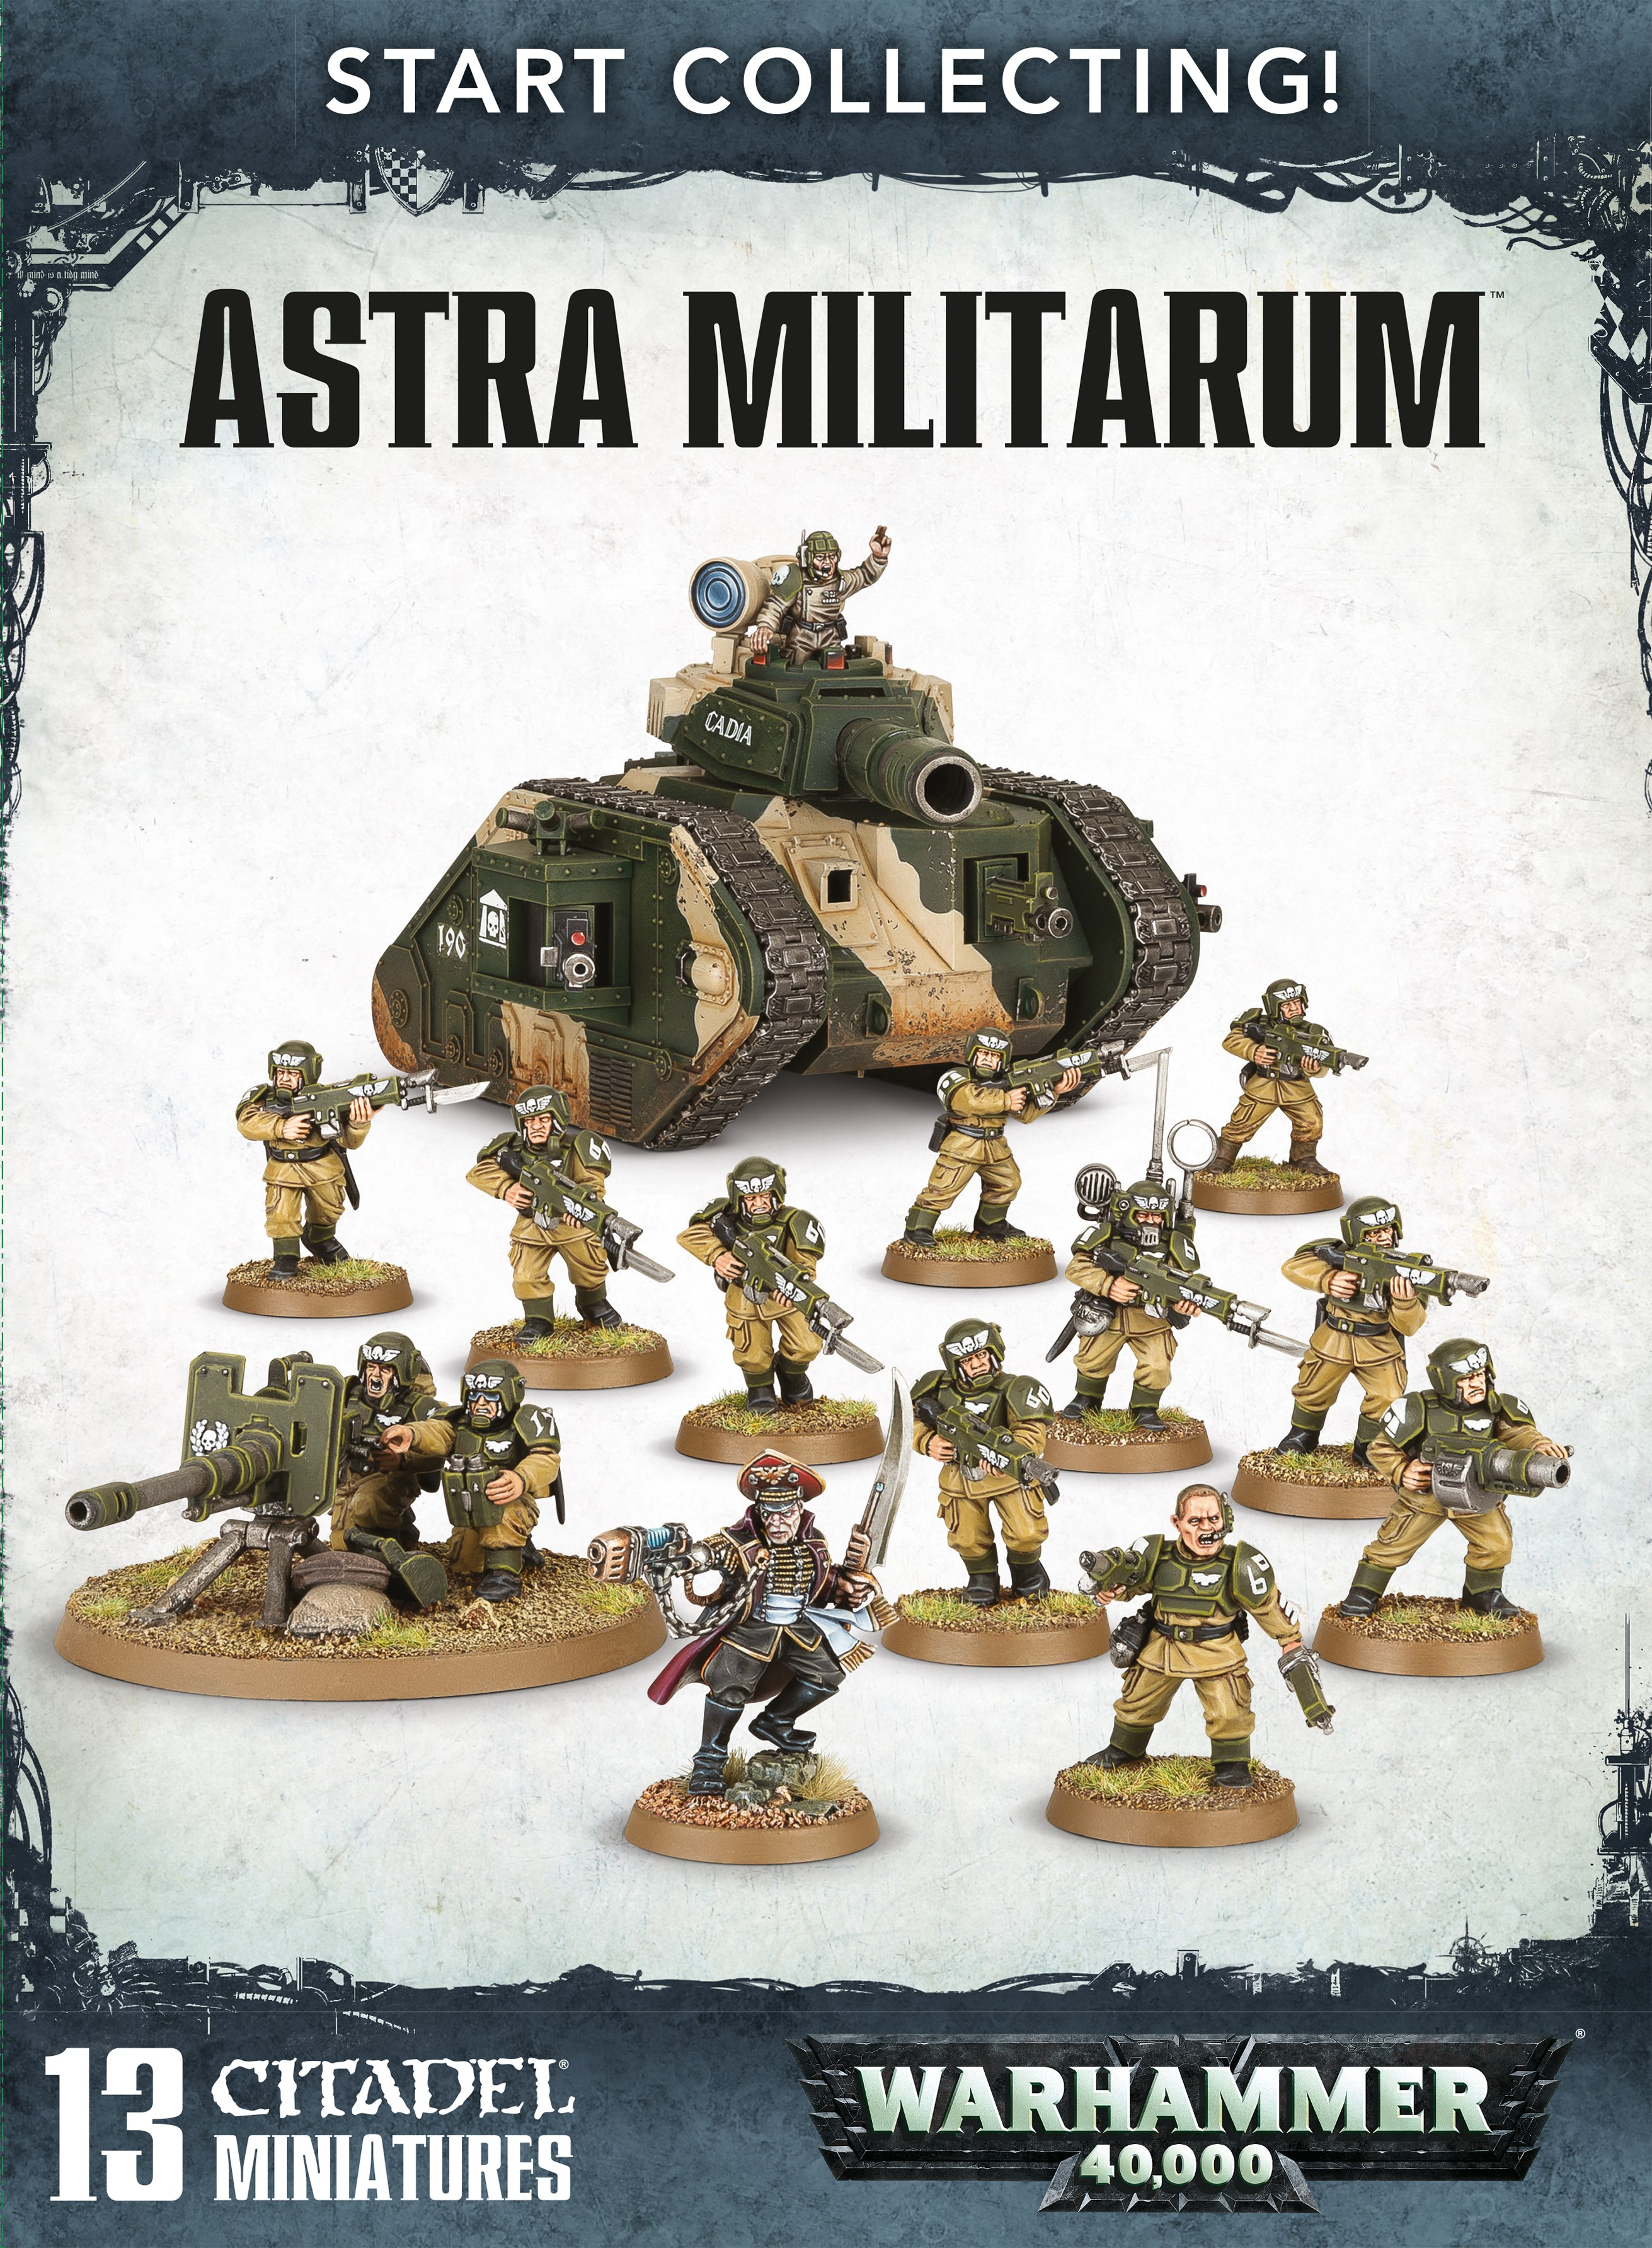 Warhammer 40,000: Astra Militarum: Start Collecting!